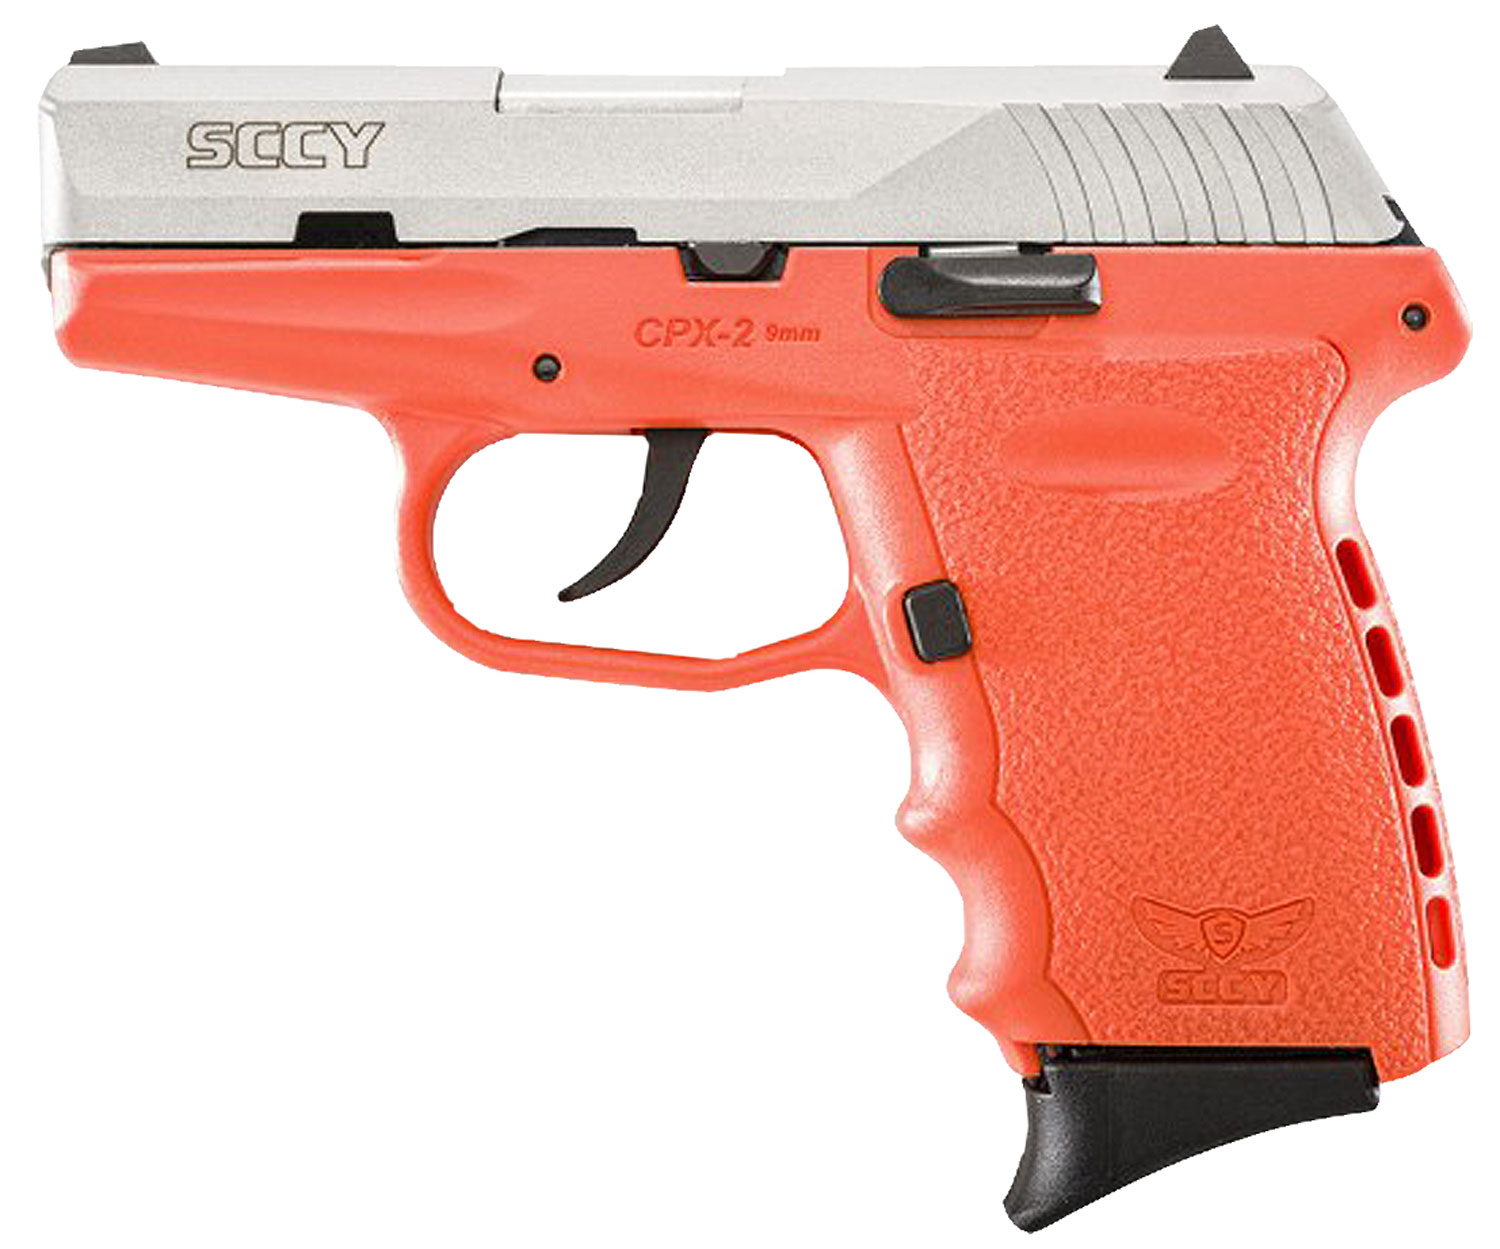 SCCY CPX2TTOR 9MM 3.1 SS  NMS 10 ORGN